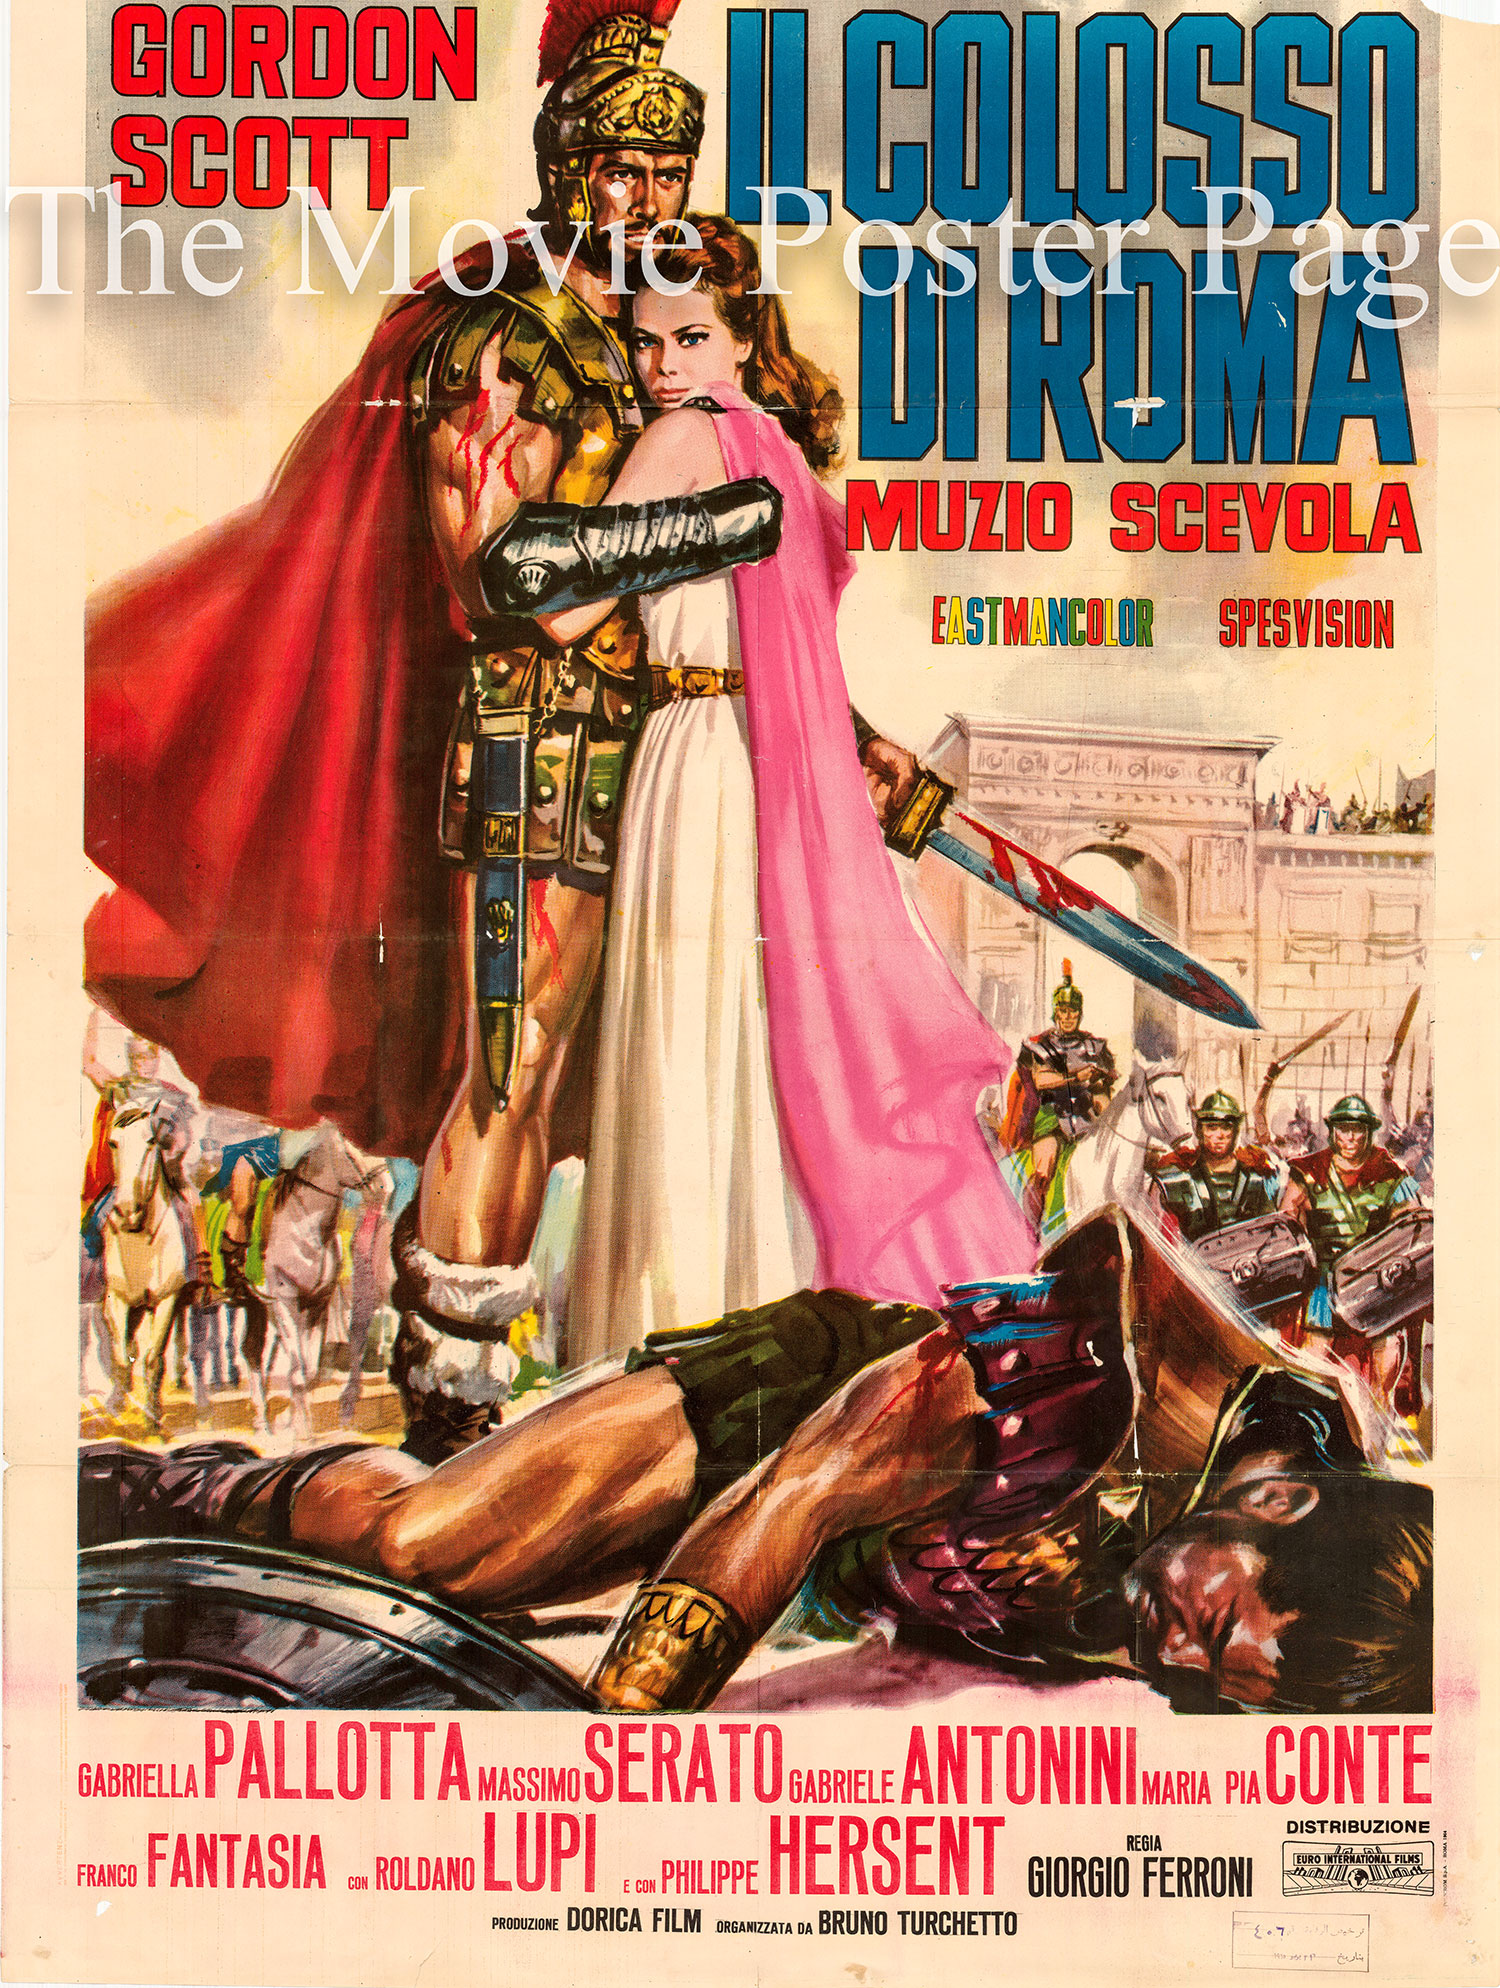 Pictured is an Italian two-sheet promotional poster for the 1964 Giorgio Ferroni film Hero of Rome starring Gordon Scott.